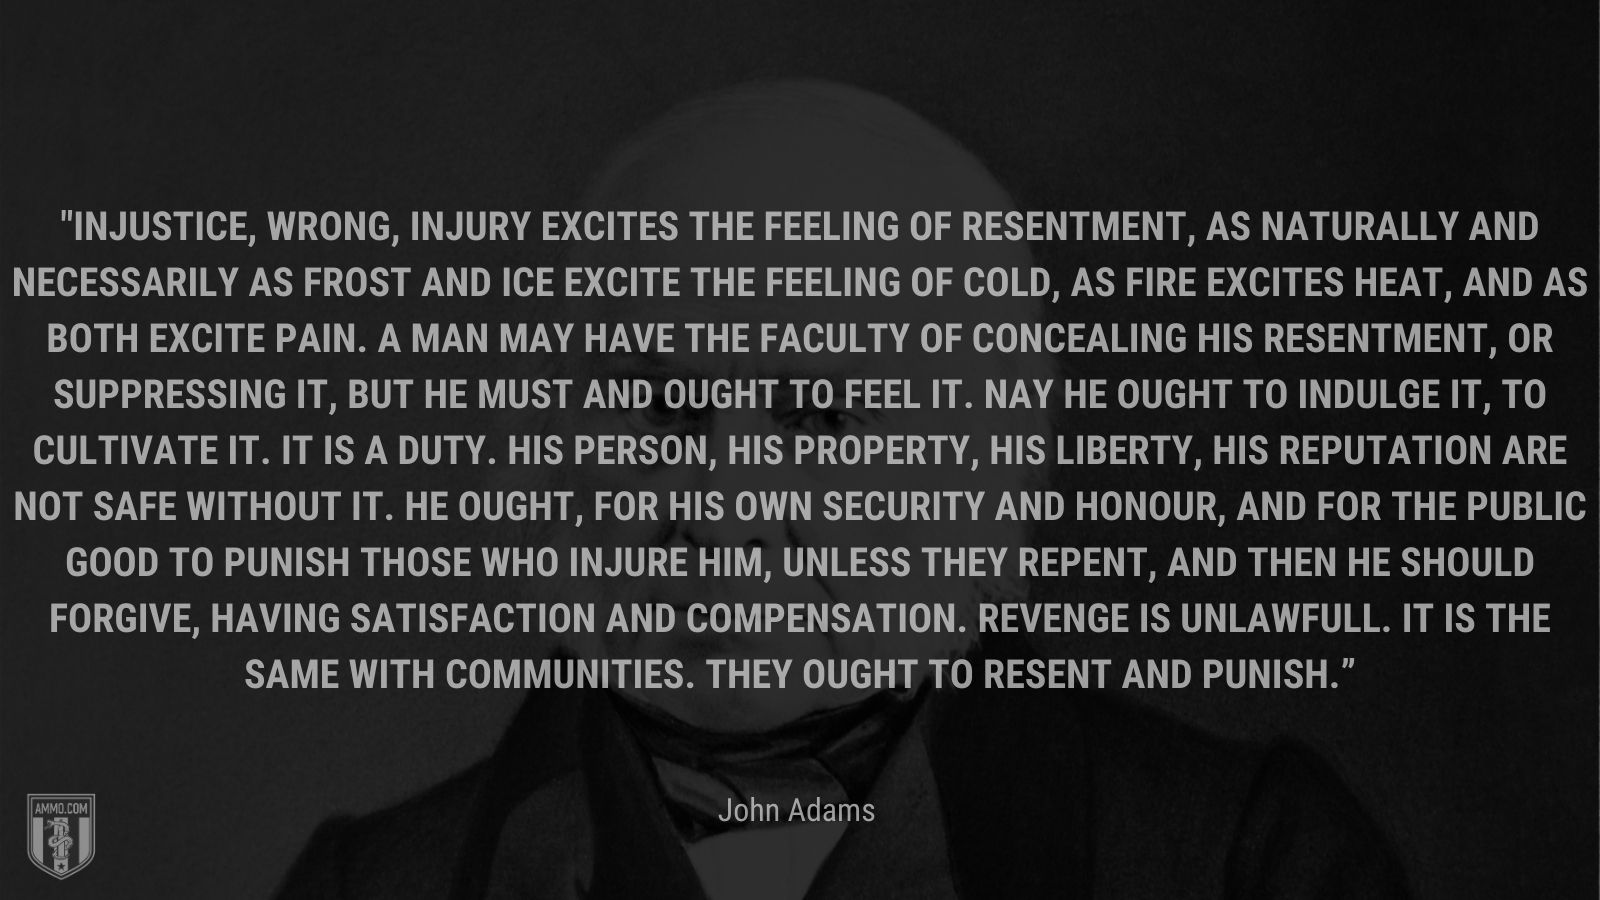 """""""In justice, wrong, injury excites the Feeling of Resentment, as naturally and necessarily as Frost and Ice excite the feeling of cold, as fire excites heat, and as both excite Pain. A Man may have the Faculty of concealing his Resentment, or suppressing it, but he must and ought to feel it. Nay he ought to indulge it, to cultivate it. It is a Duty. His Person, his Property, his Liberty, his Reputation are not safe without it. He ought, for his own Security and Honour, and for the public good to punish those who injure him, unless they repent, and then he should forgive, having Satisfaction and Compensation. Revenge is unlawfull. It is the same with Communities. They ought to resent and punish."""" - John Adams"""